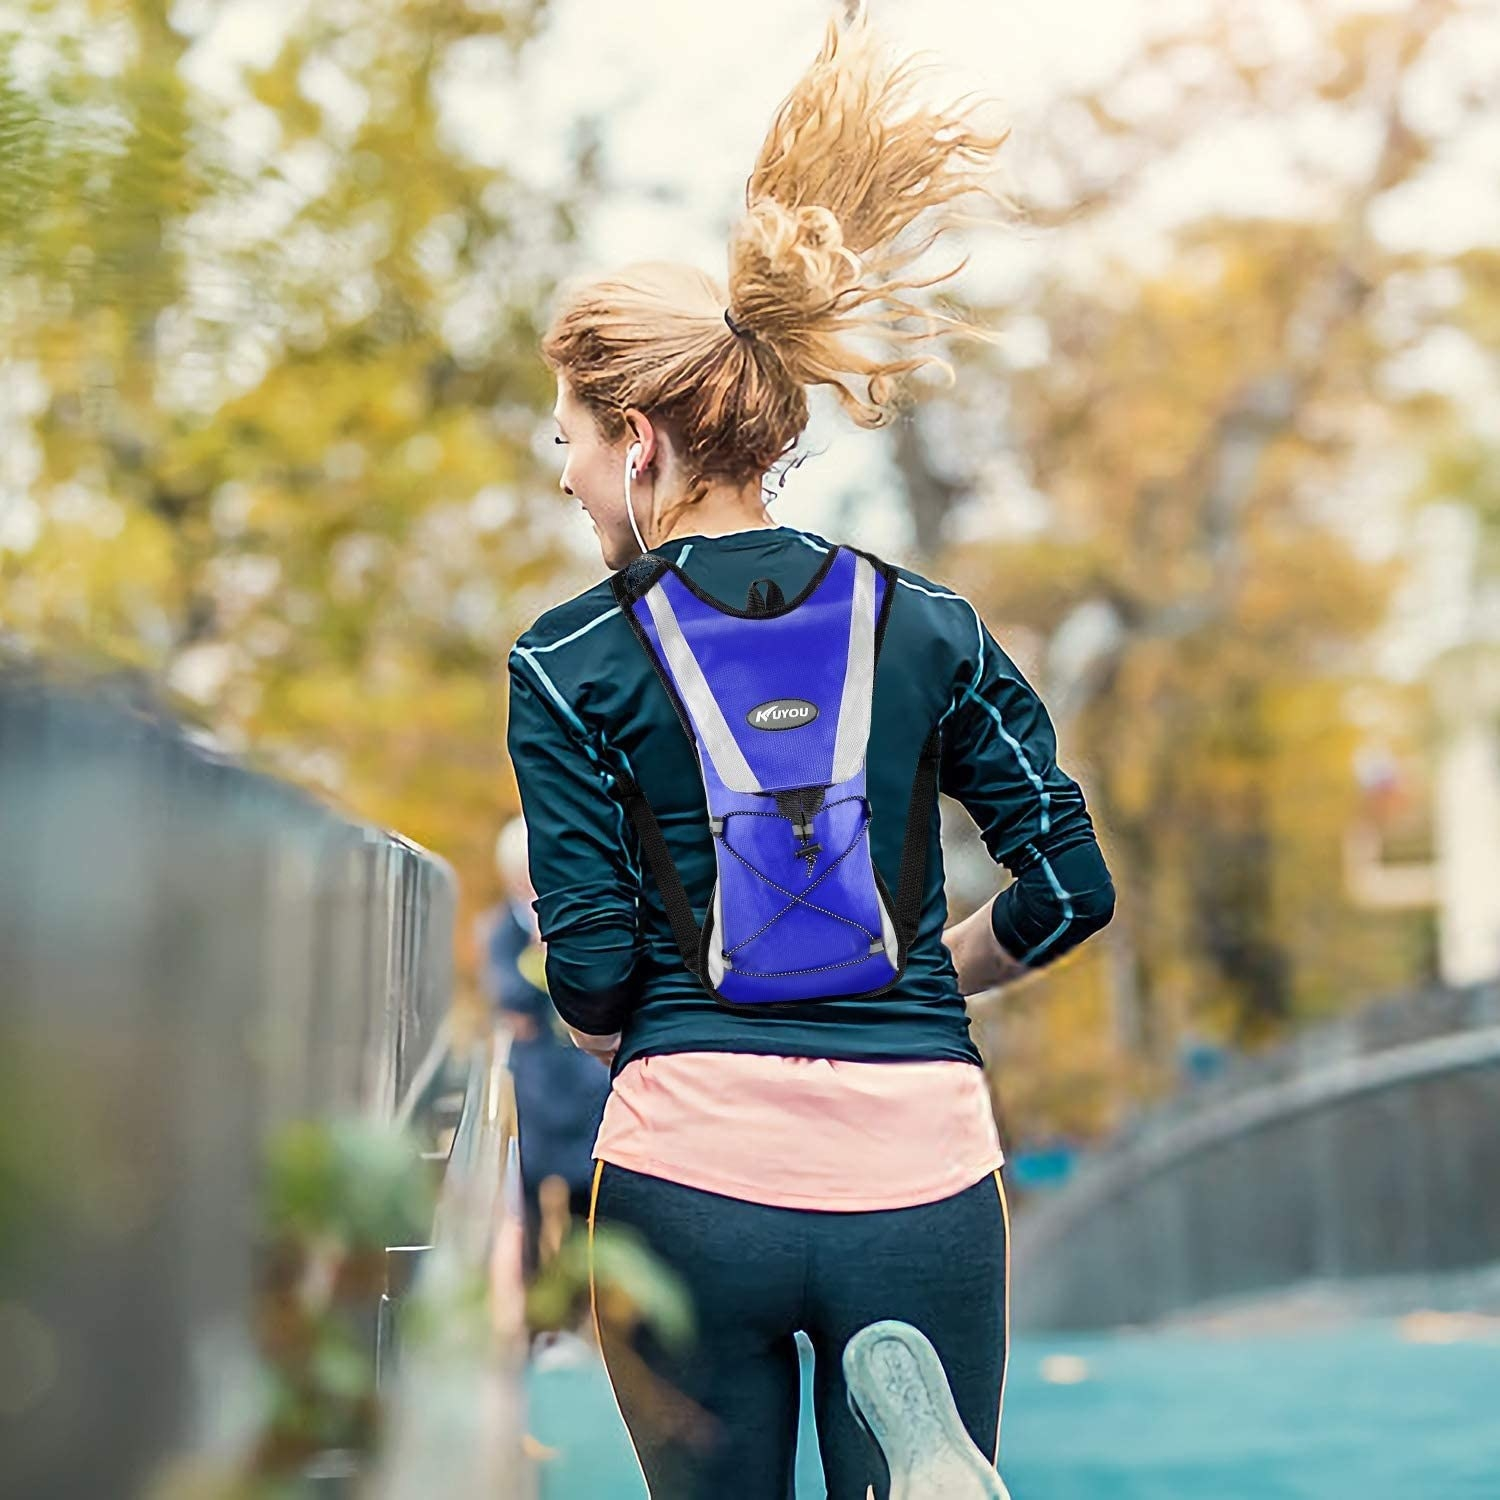 Model running with a blue hydration backpack